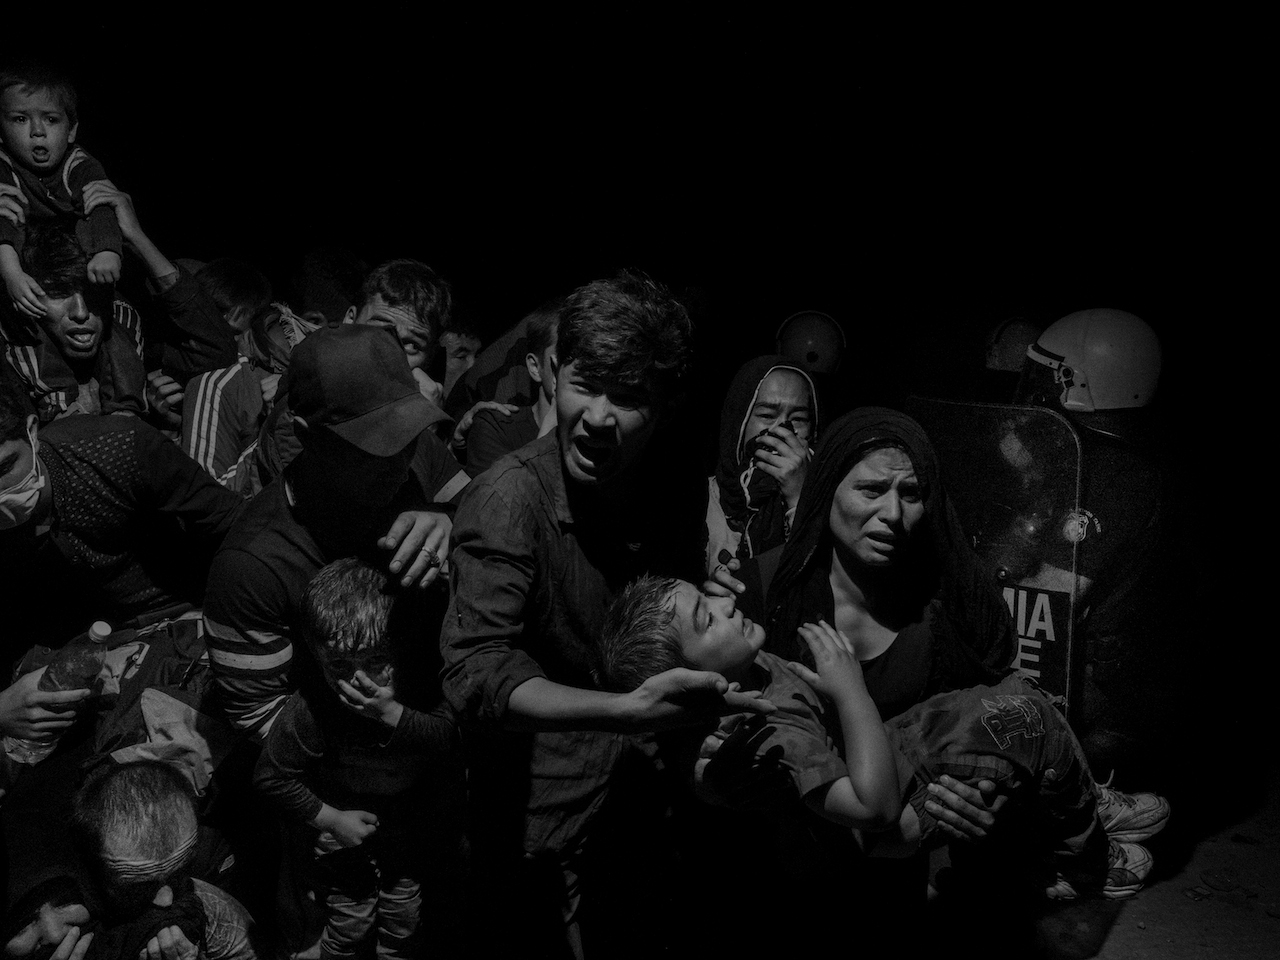 Alex Majoli. Greece, Lesbos. 2015. The refugees and migrant arriving on Lesbos island are transferred to Moria refugee camp where they await registration from authorities before they can move on.